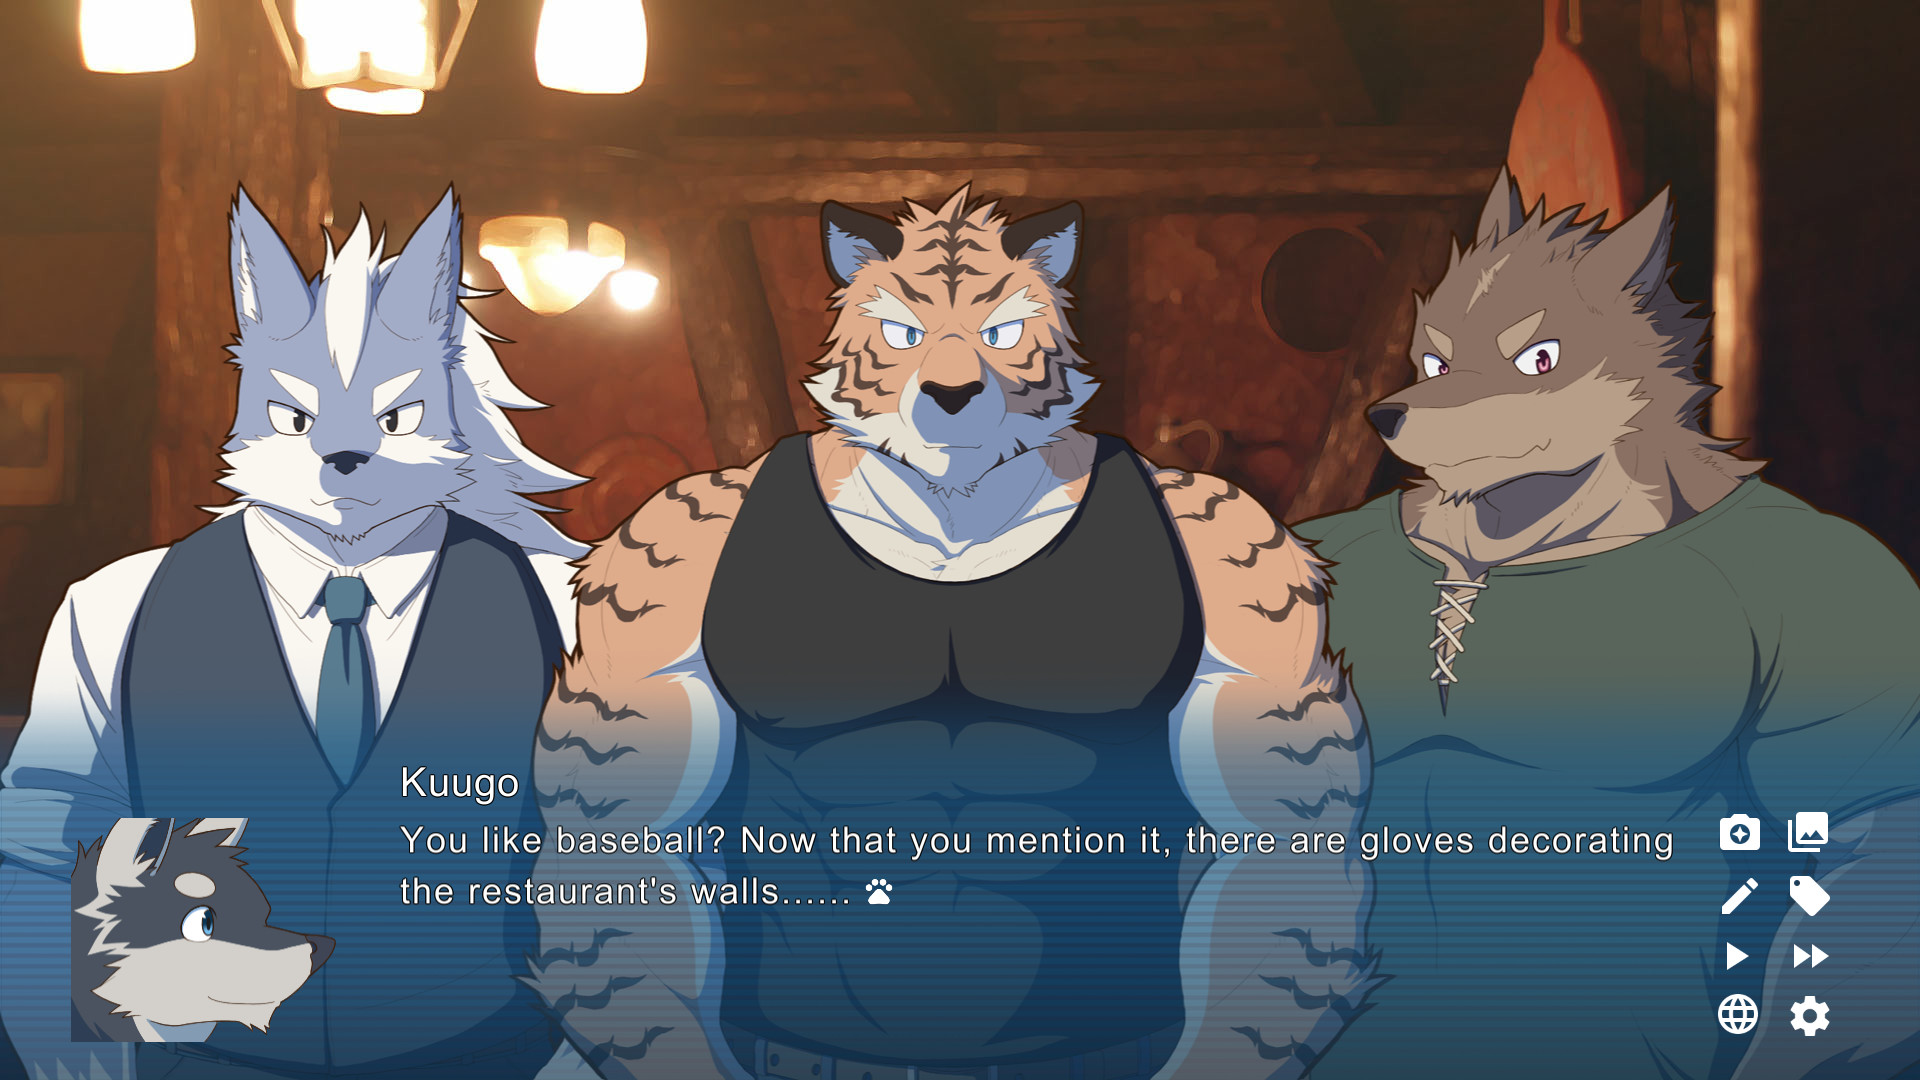 Two humanoid wolves and a humanoid tiger, all wearing clothes, standing indoors. Dialogue reads 'You like baseball? Now that you mention it, there are gloves decorating this restaurant's walls'